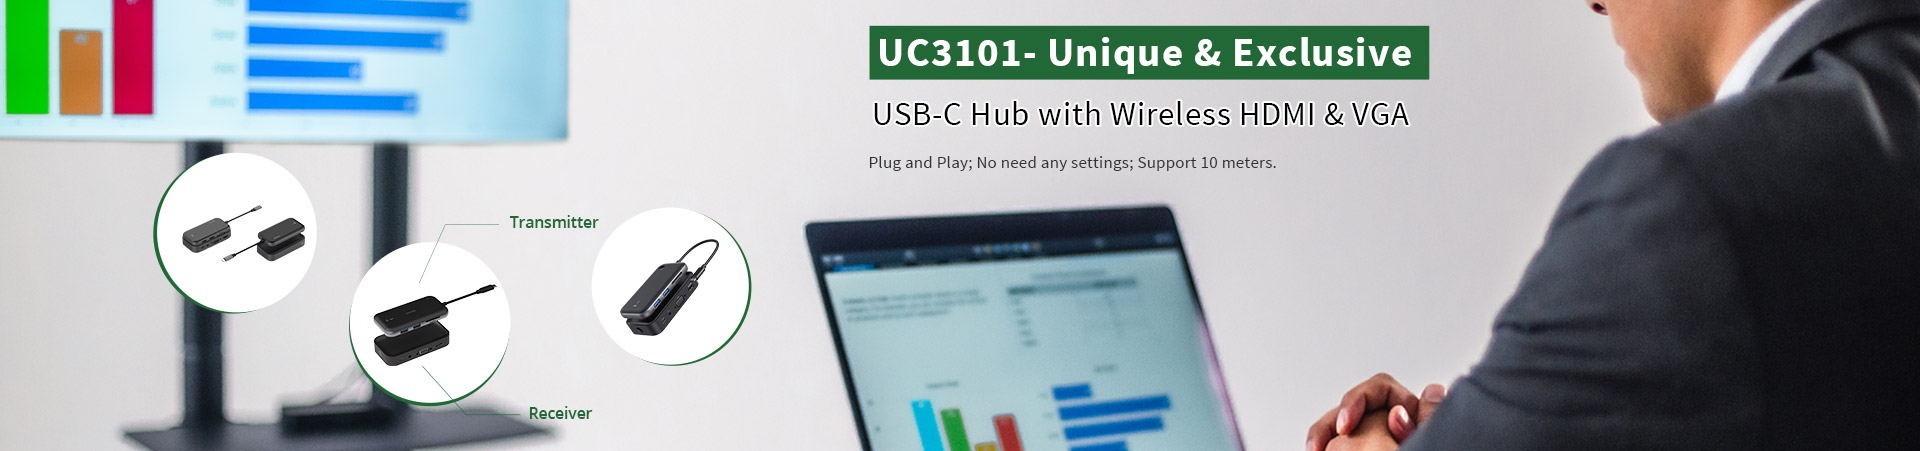 UC3101 USB-C Hub mit drahtlosem Display